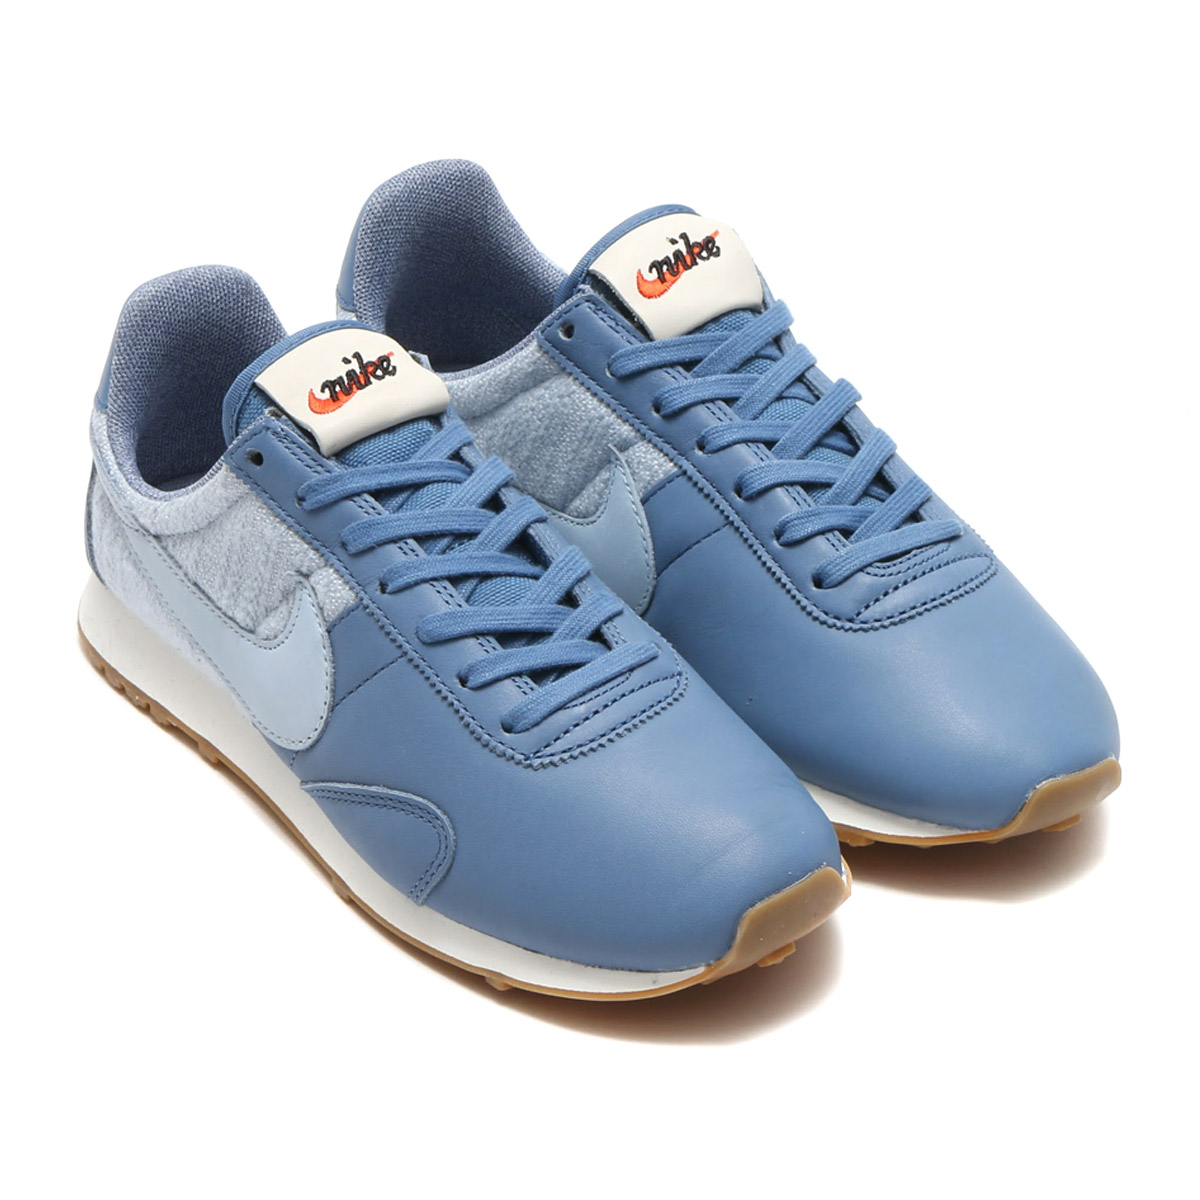 9455aaa37133d The design that the upper of the Nike women pre-Montreal racer vintage  textile was developed as one of the spikes for the Nike's first land.